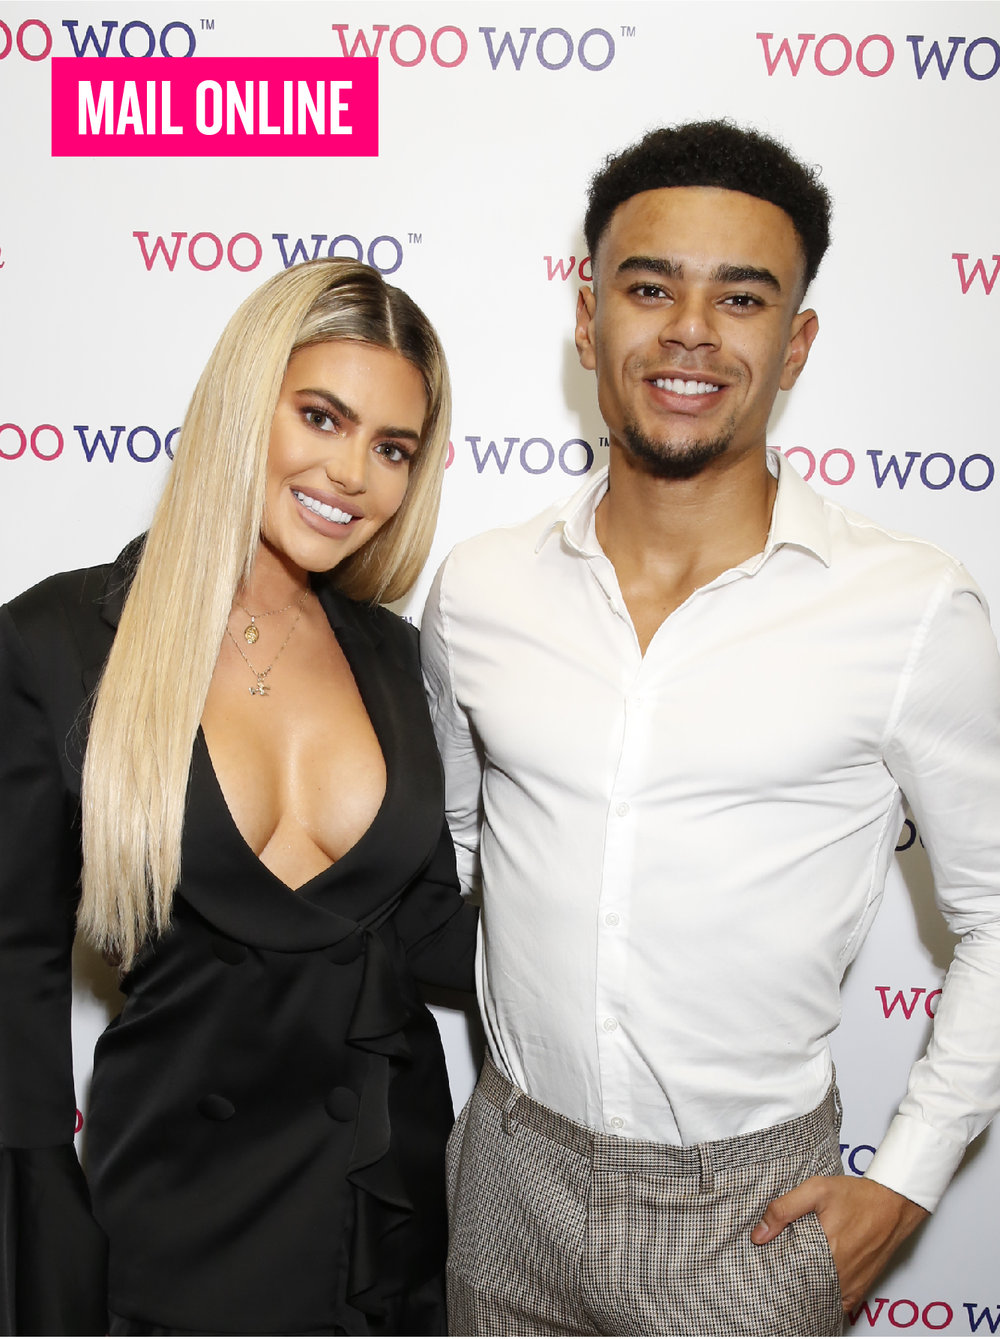 WOOWOO LAUNCH - Love Island's Megan Barton Hanson takes the plunge in a tuxedo mini-dress as she and Wes Nelson share a smooch at Woo Woo party. Read more.